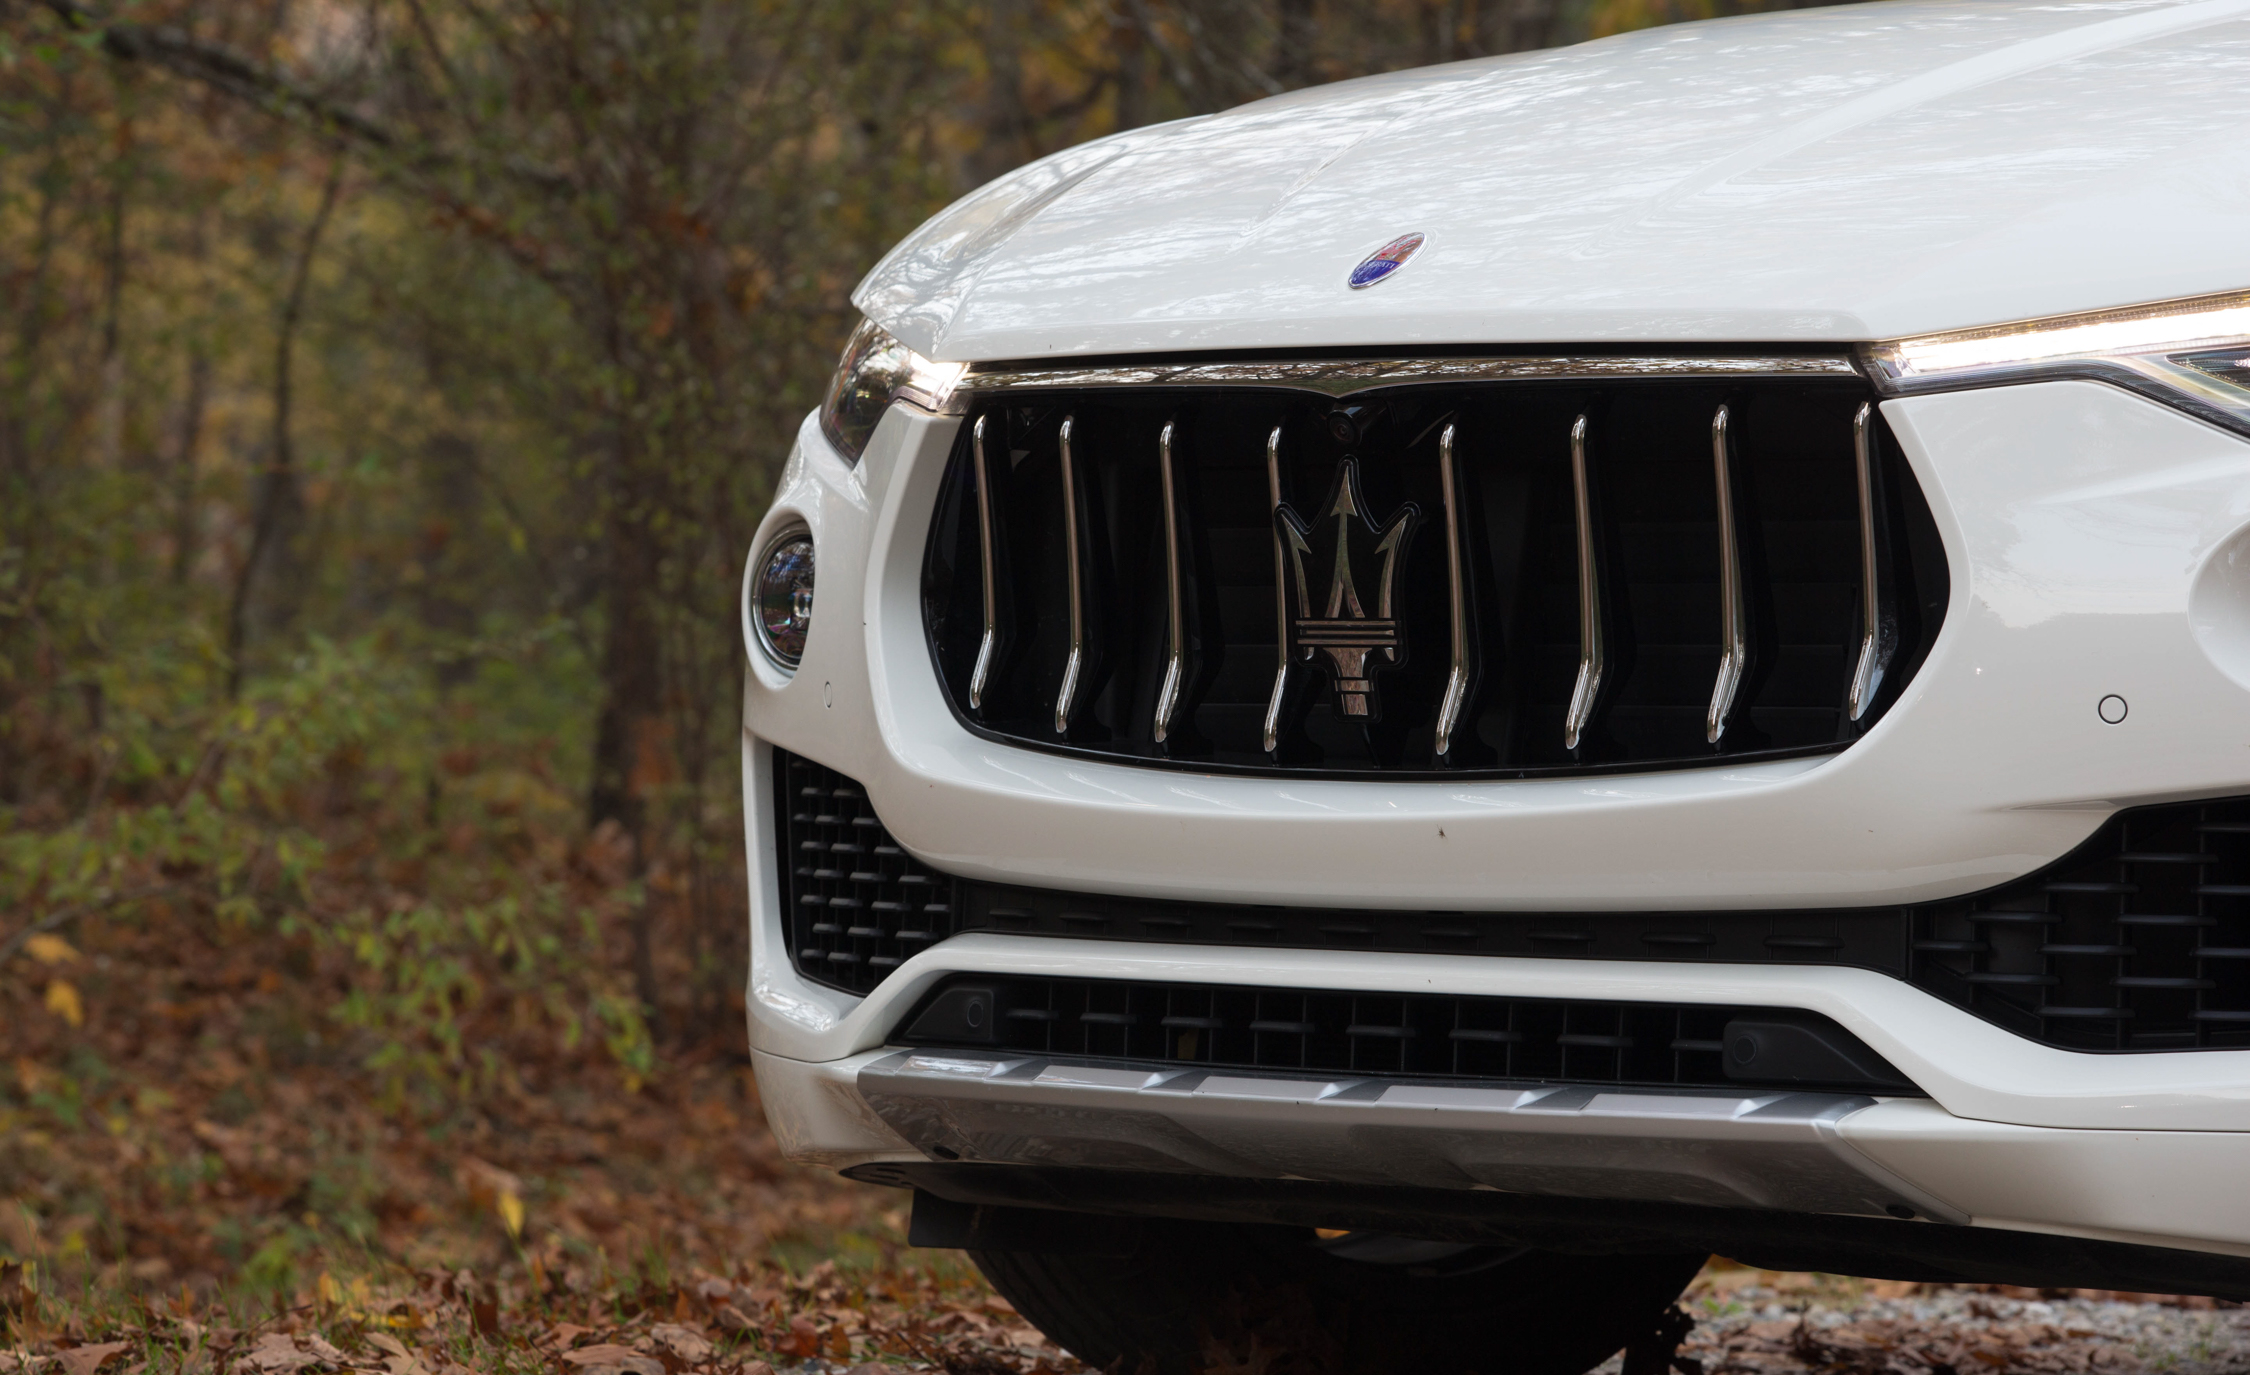 2017 Maserati Levante S Q4 Exterior View Grille And Bumper (Photo 4 of 21)